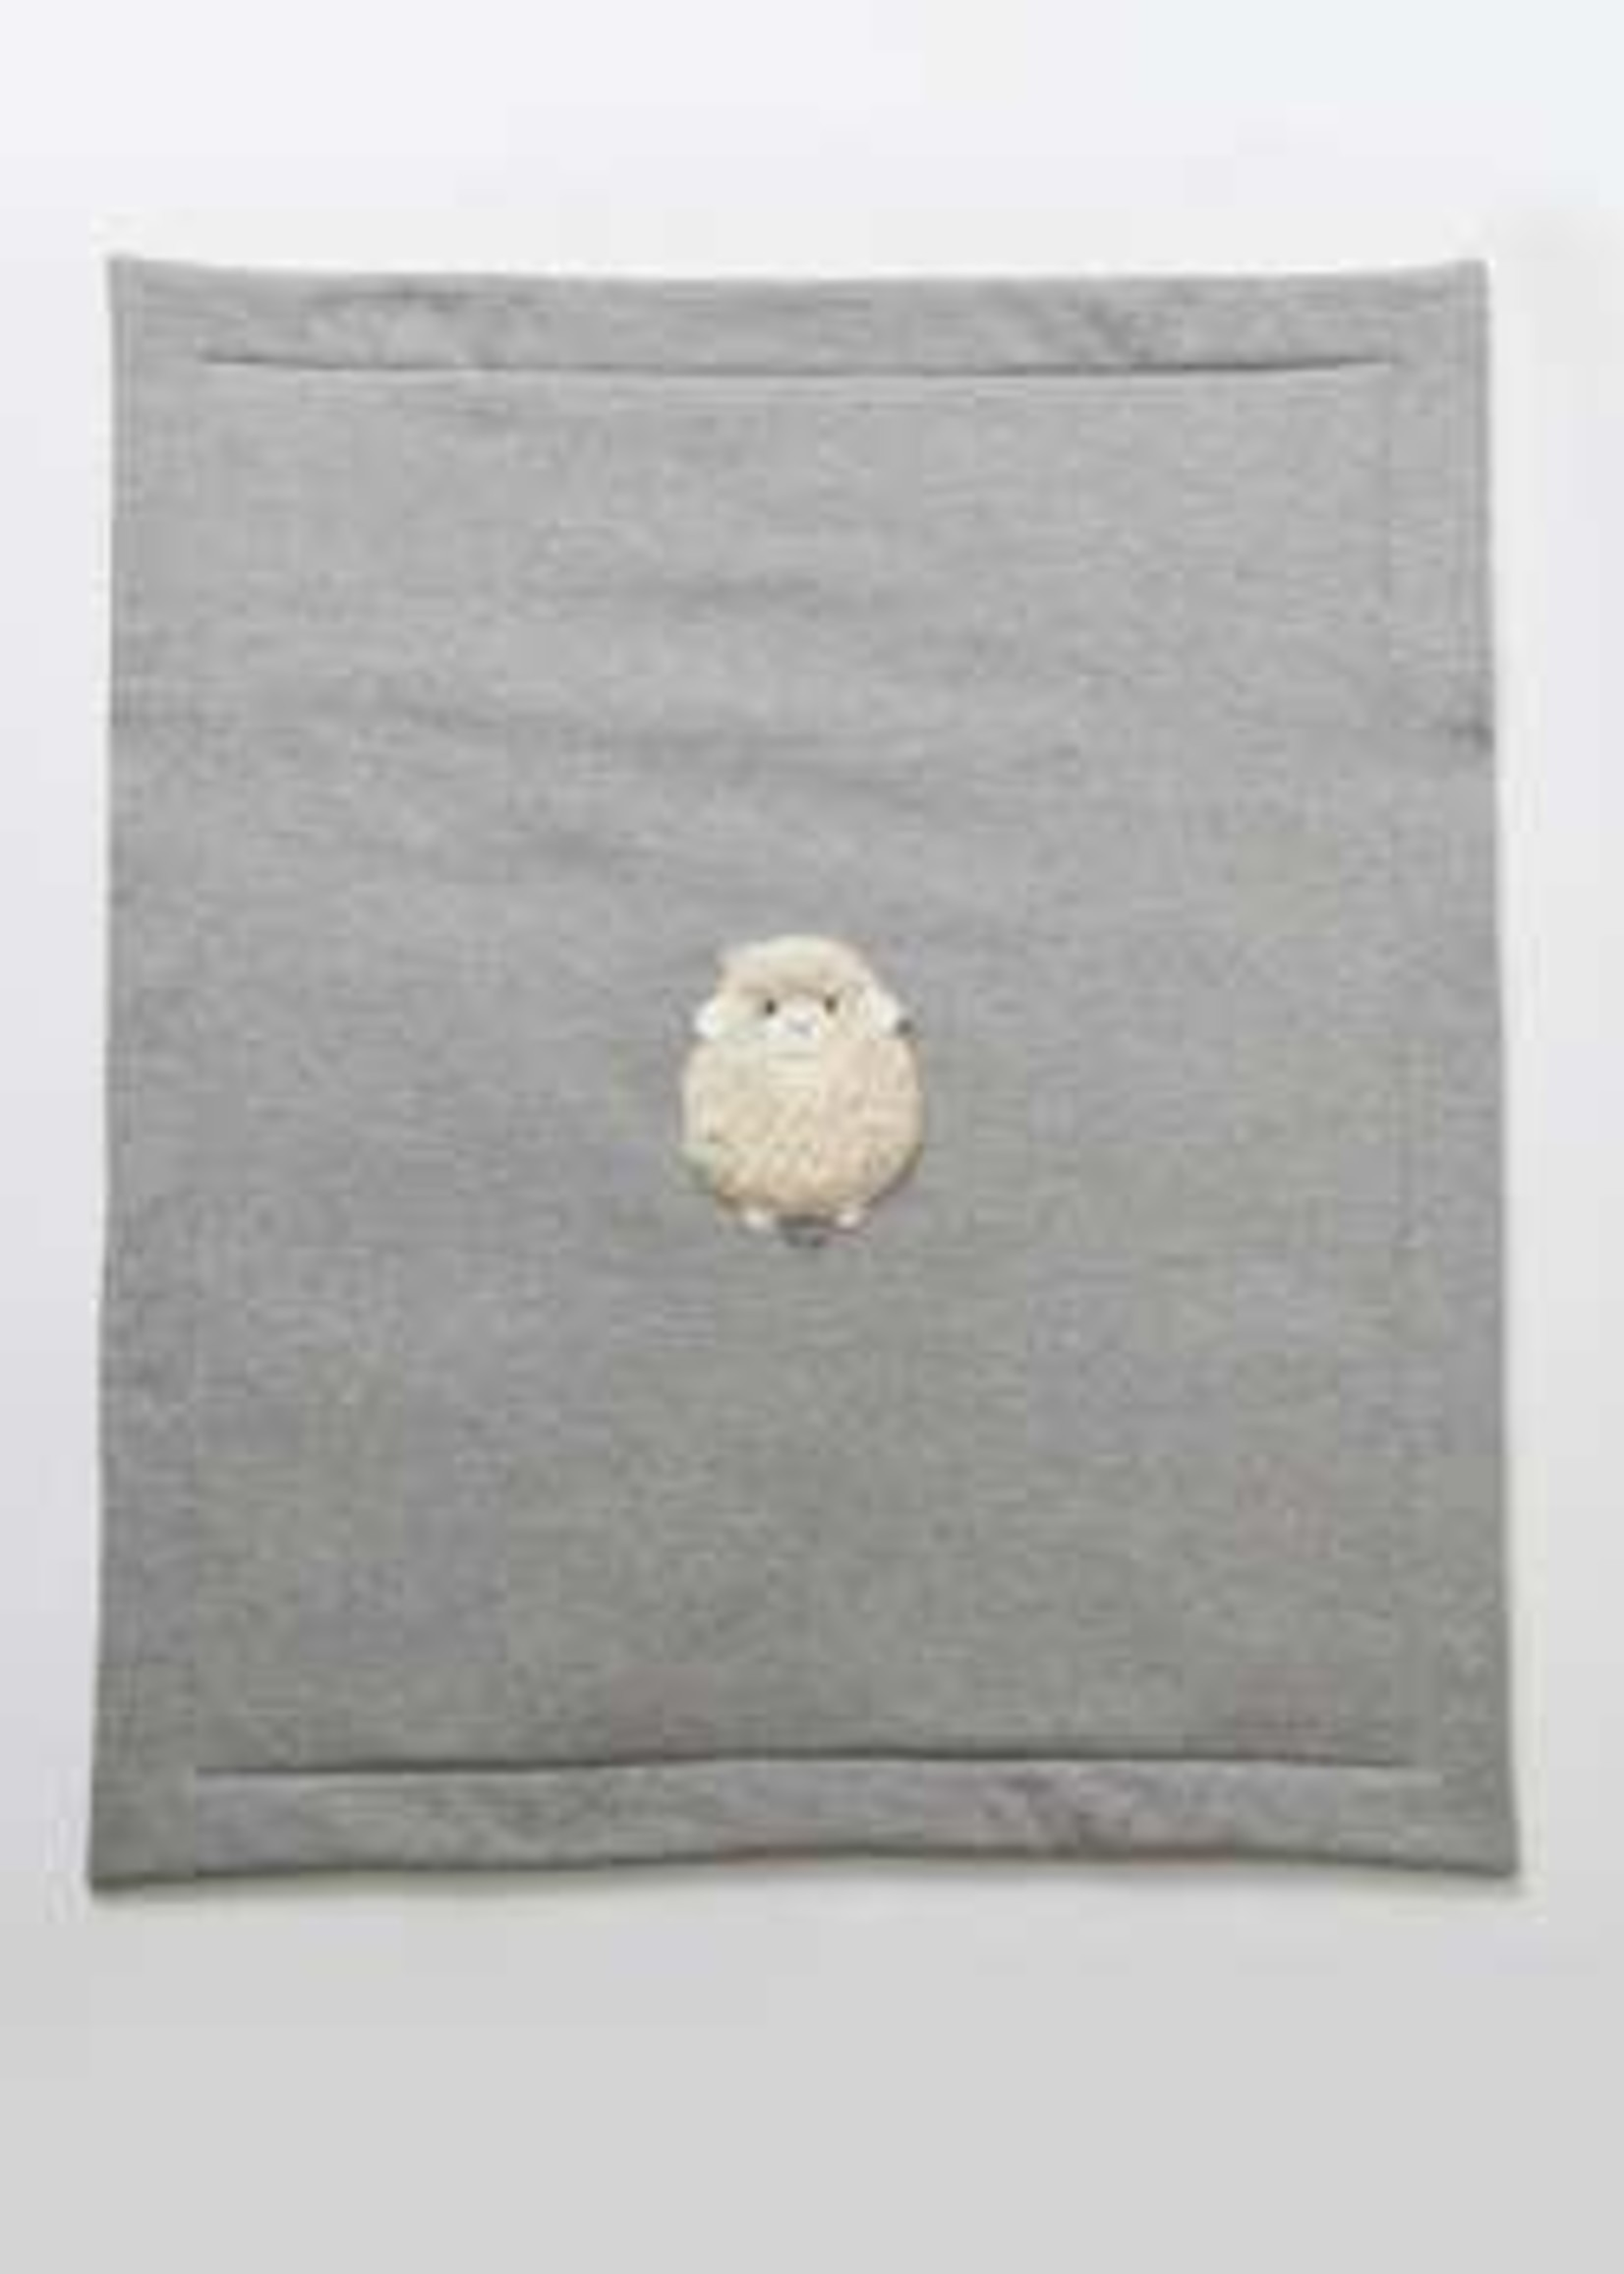 Il Gufo IL GUFO-AW21 OG071 BABY BLANKET W/SHEEP ON THE FRONT